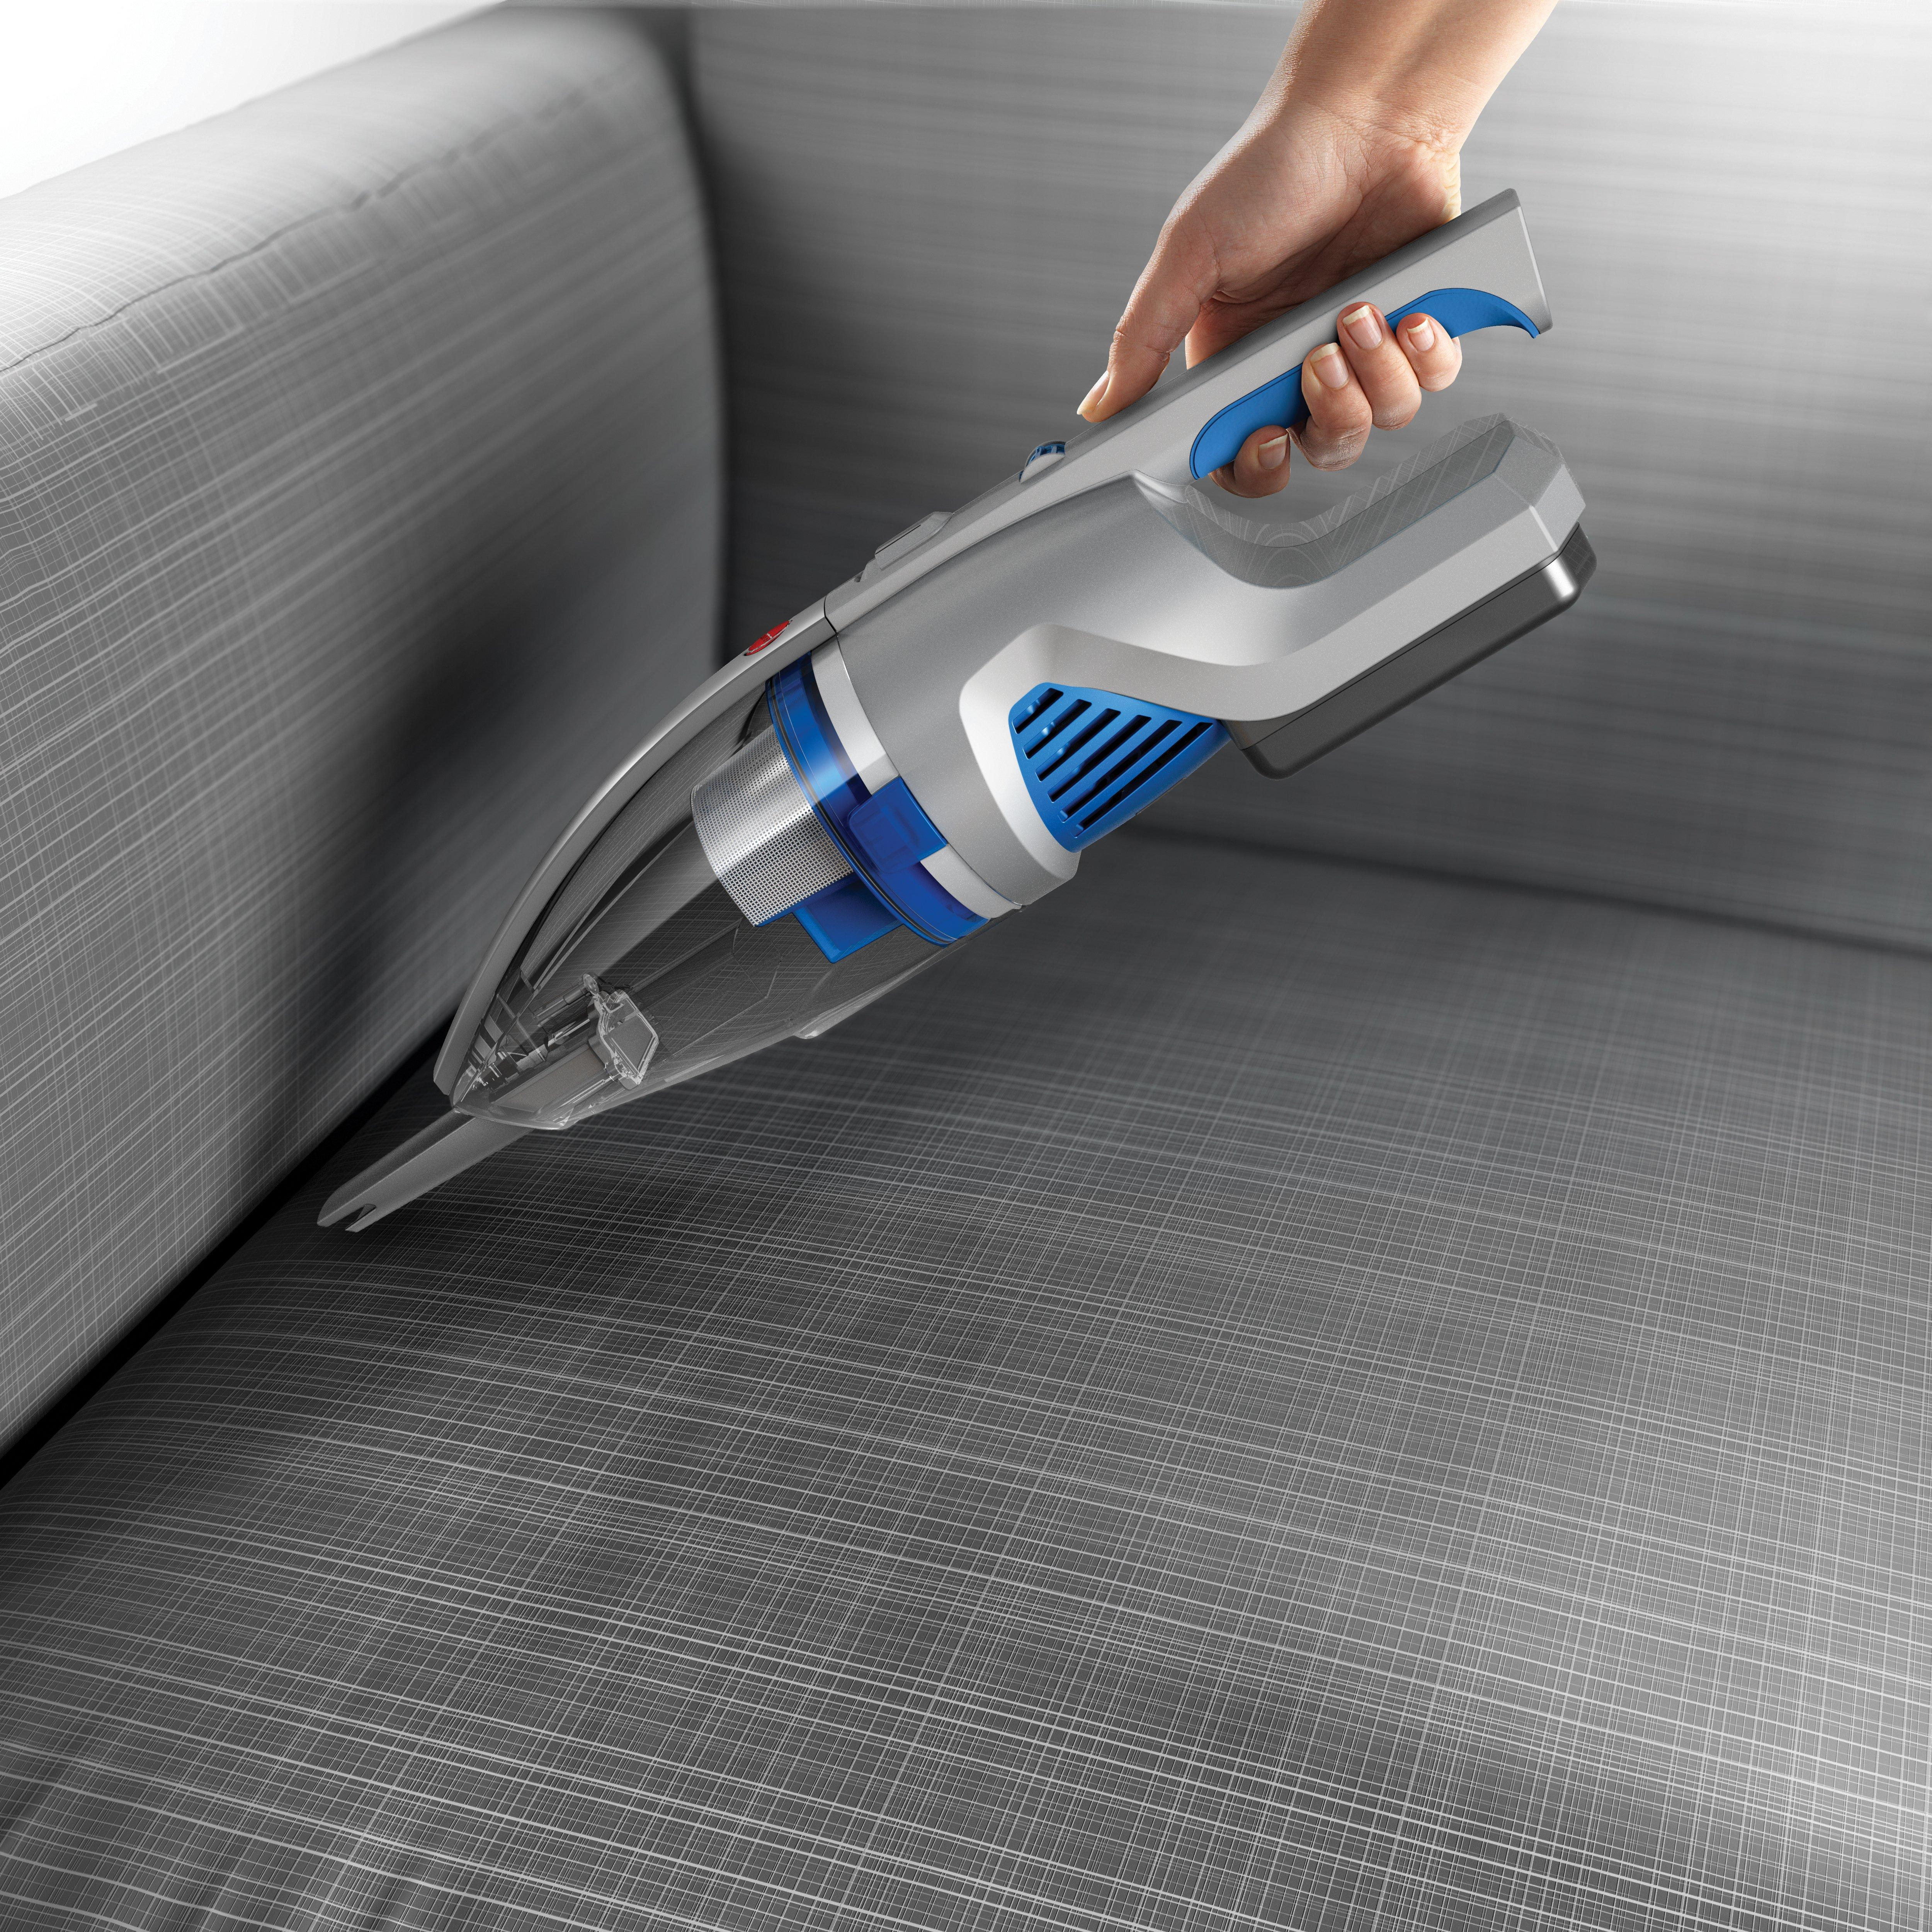 Air Cordless 2-in-1 Deluxe Stick & Hand Vacuum6